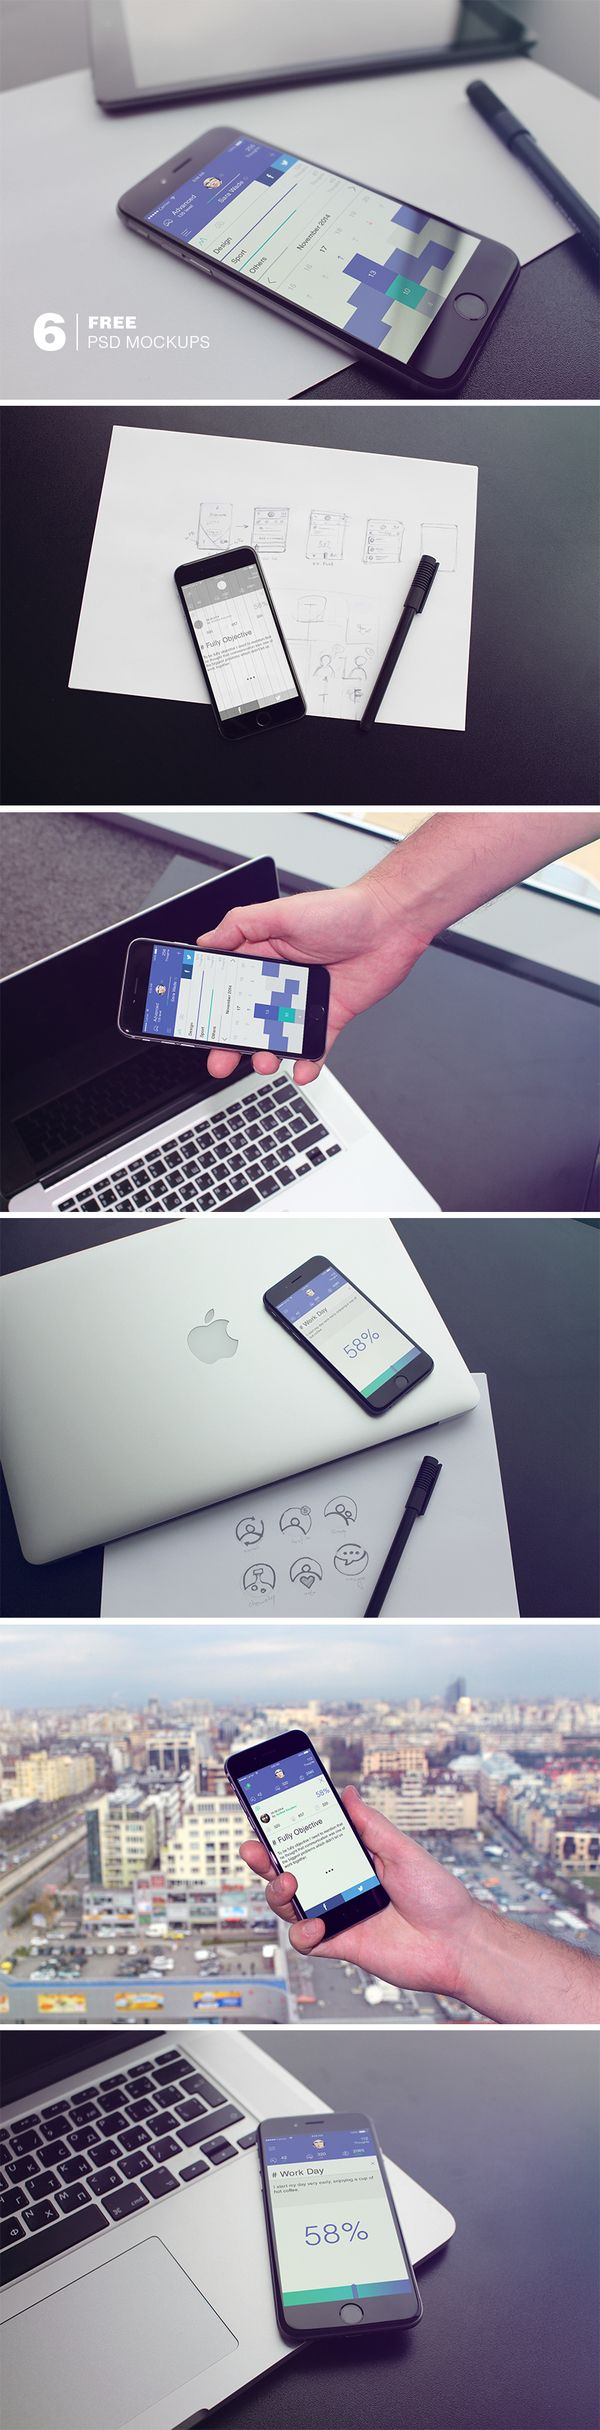 6 iPhone Mockups Download PSD: http://graphicsbay.com/item/6-iphone-mockups/442